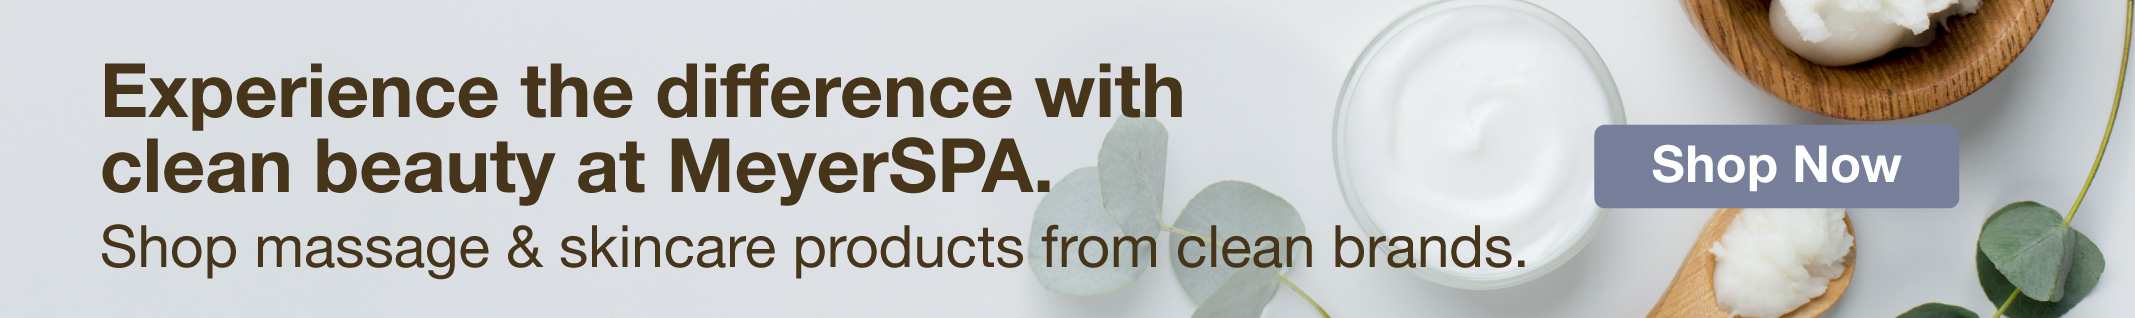 Full Page Ad – Shop Clean Beauty at MeyerSPA – Click to View Page